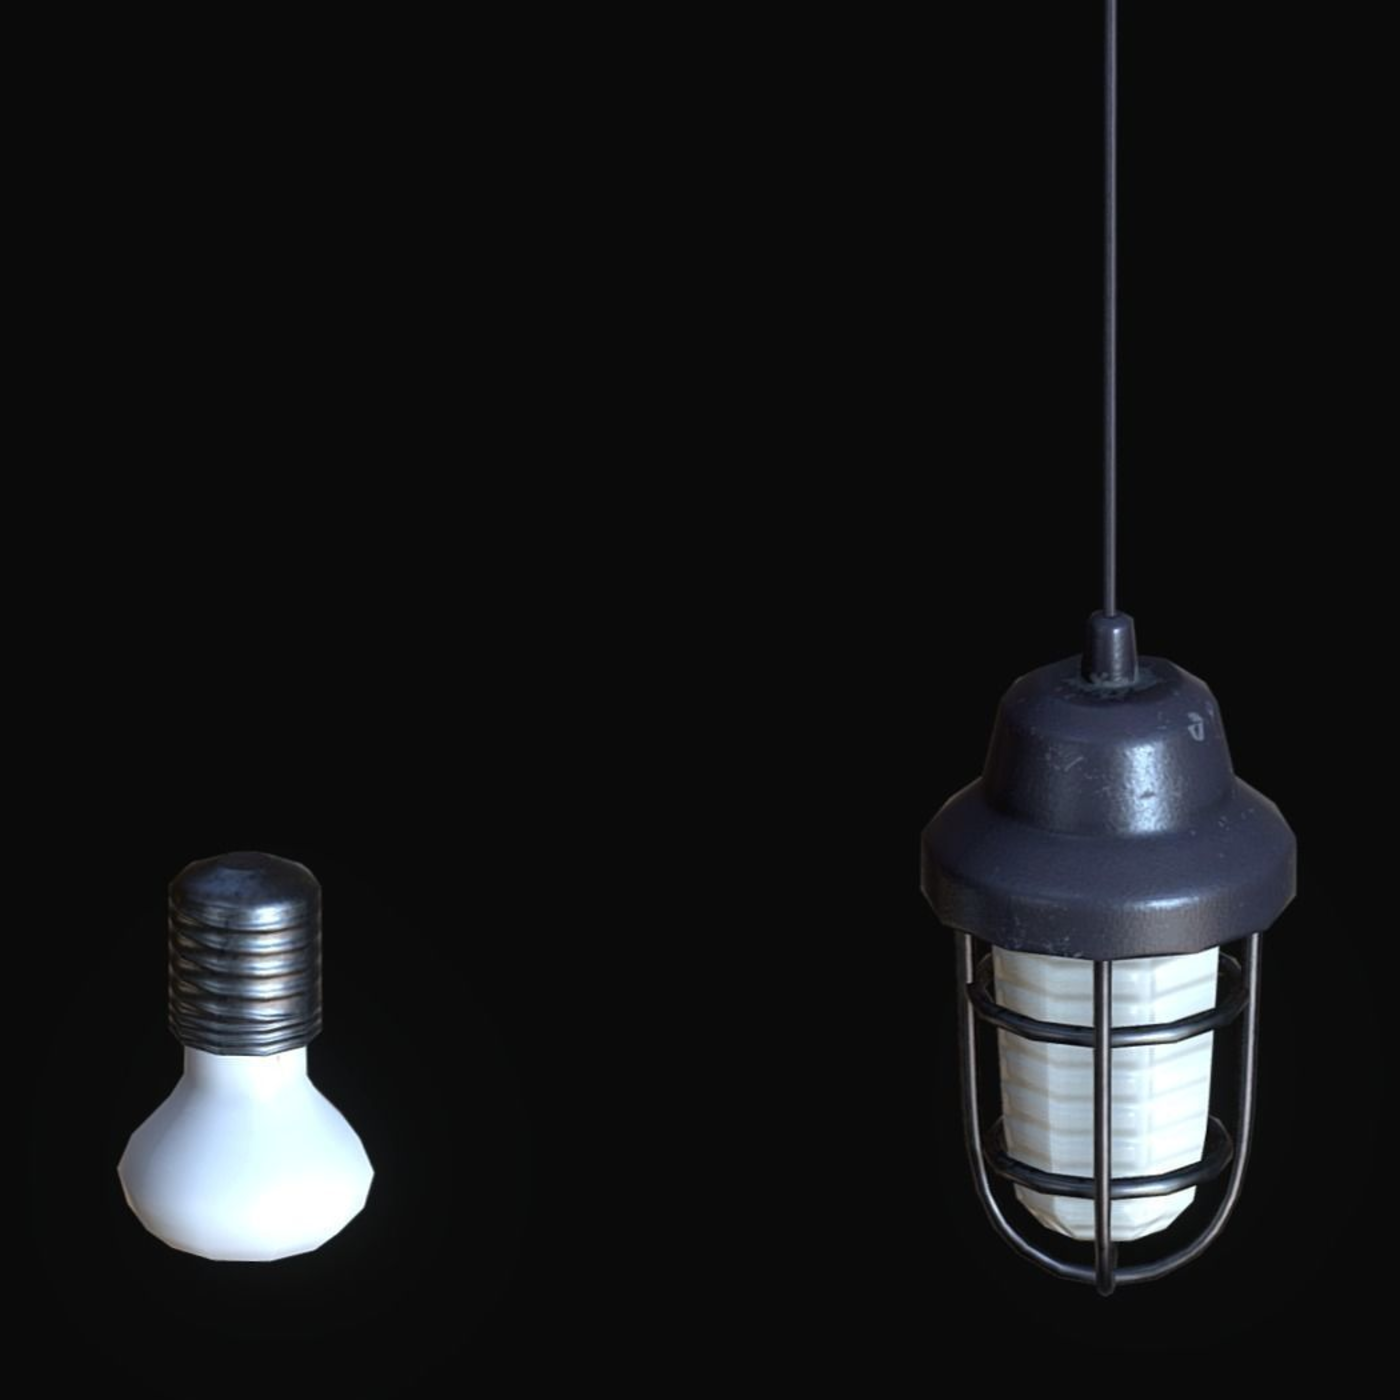 OLD LAMPS - Low-poly 3D model